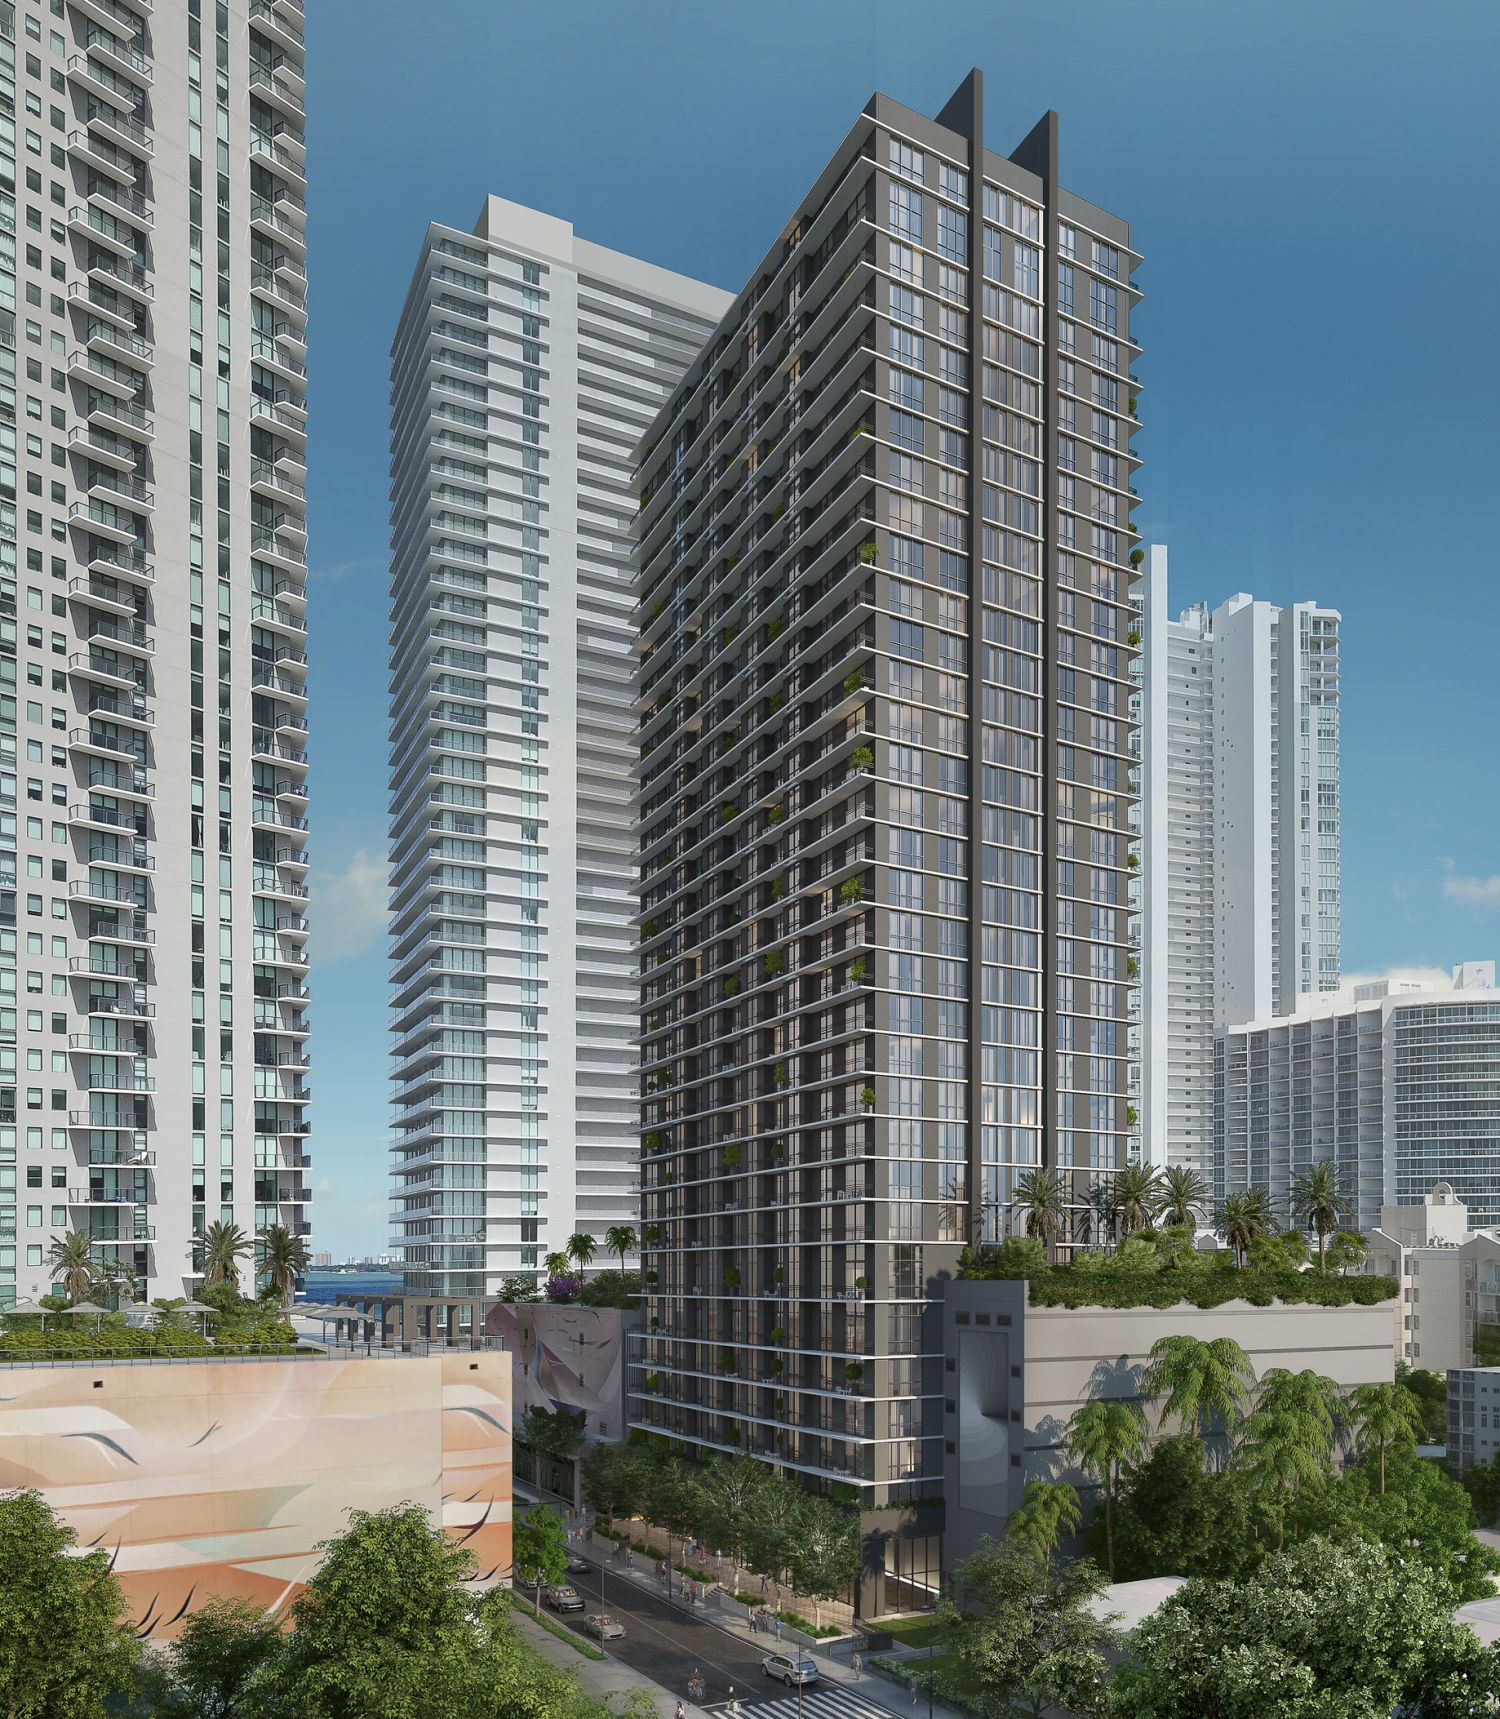 Metro Edgewater. Designed by Burgos Lanza Architects & Planners.